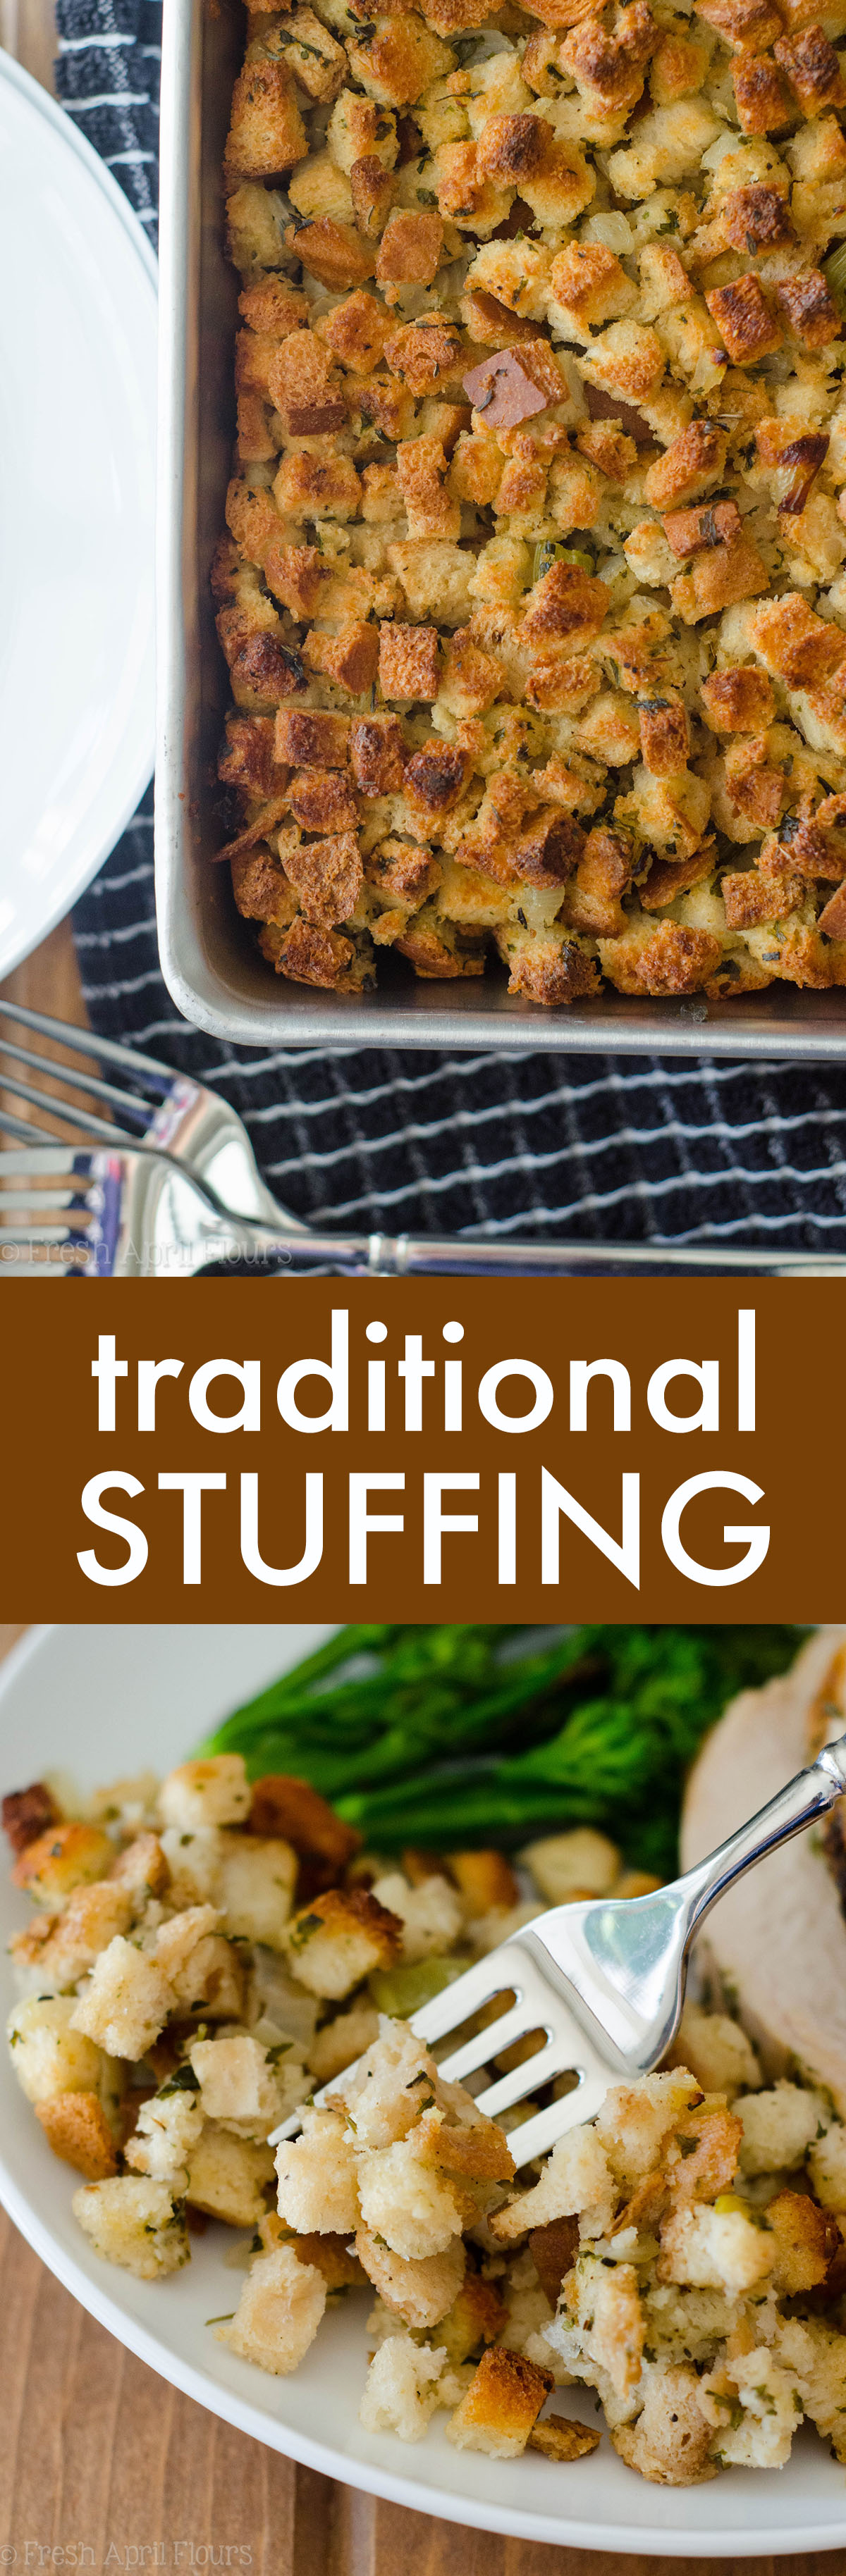 Loaded with flavorful vegetables and the perfect herbs to complement your dish, this classic bread stuffing will go great at your Thanksgiving feast.